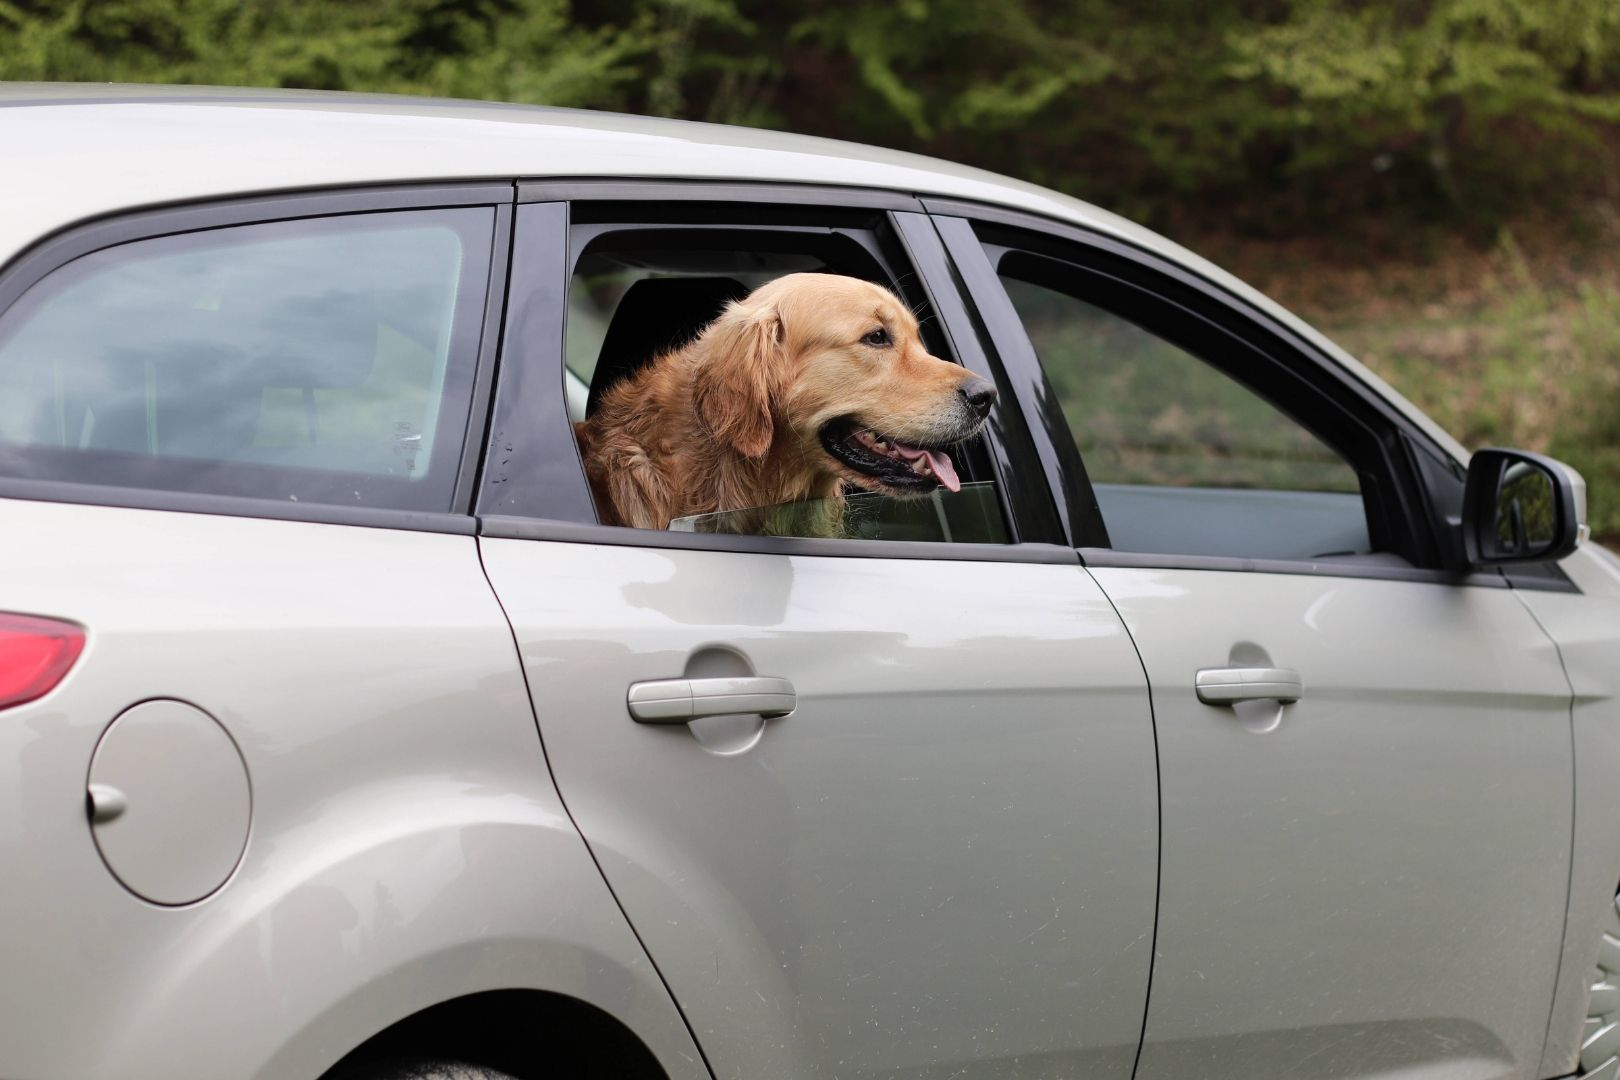 My Dog Gets Car Sick | How to Travel With Your Dog | 5 Top Tips